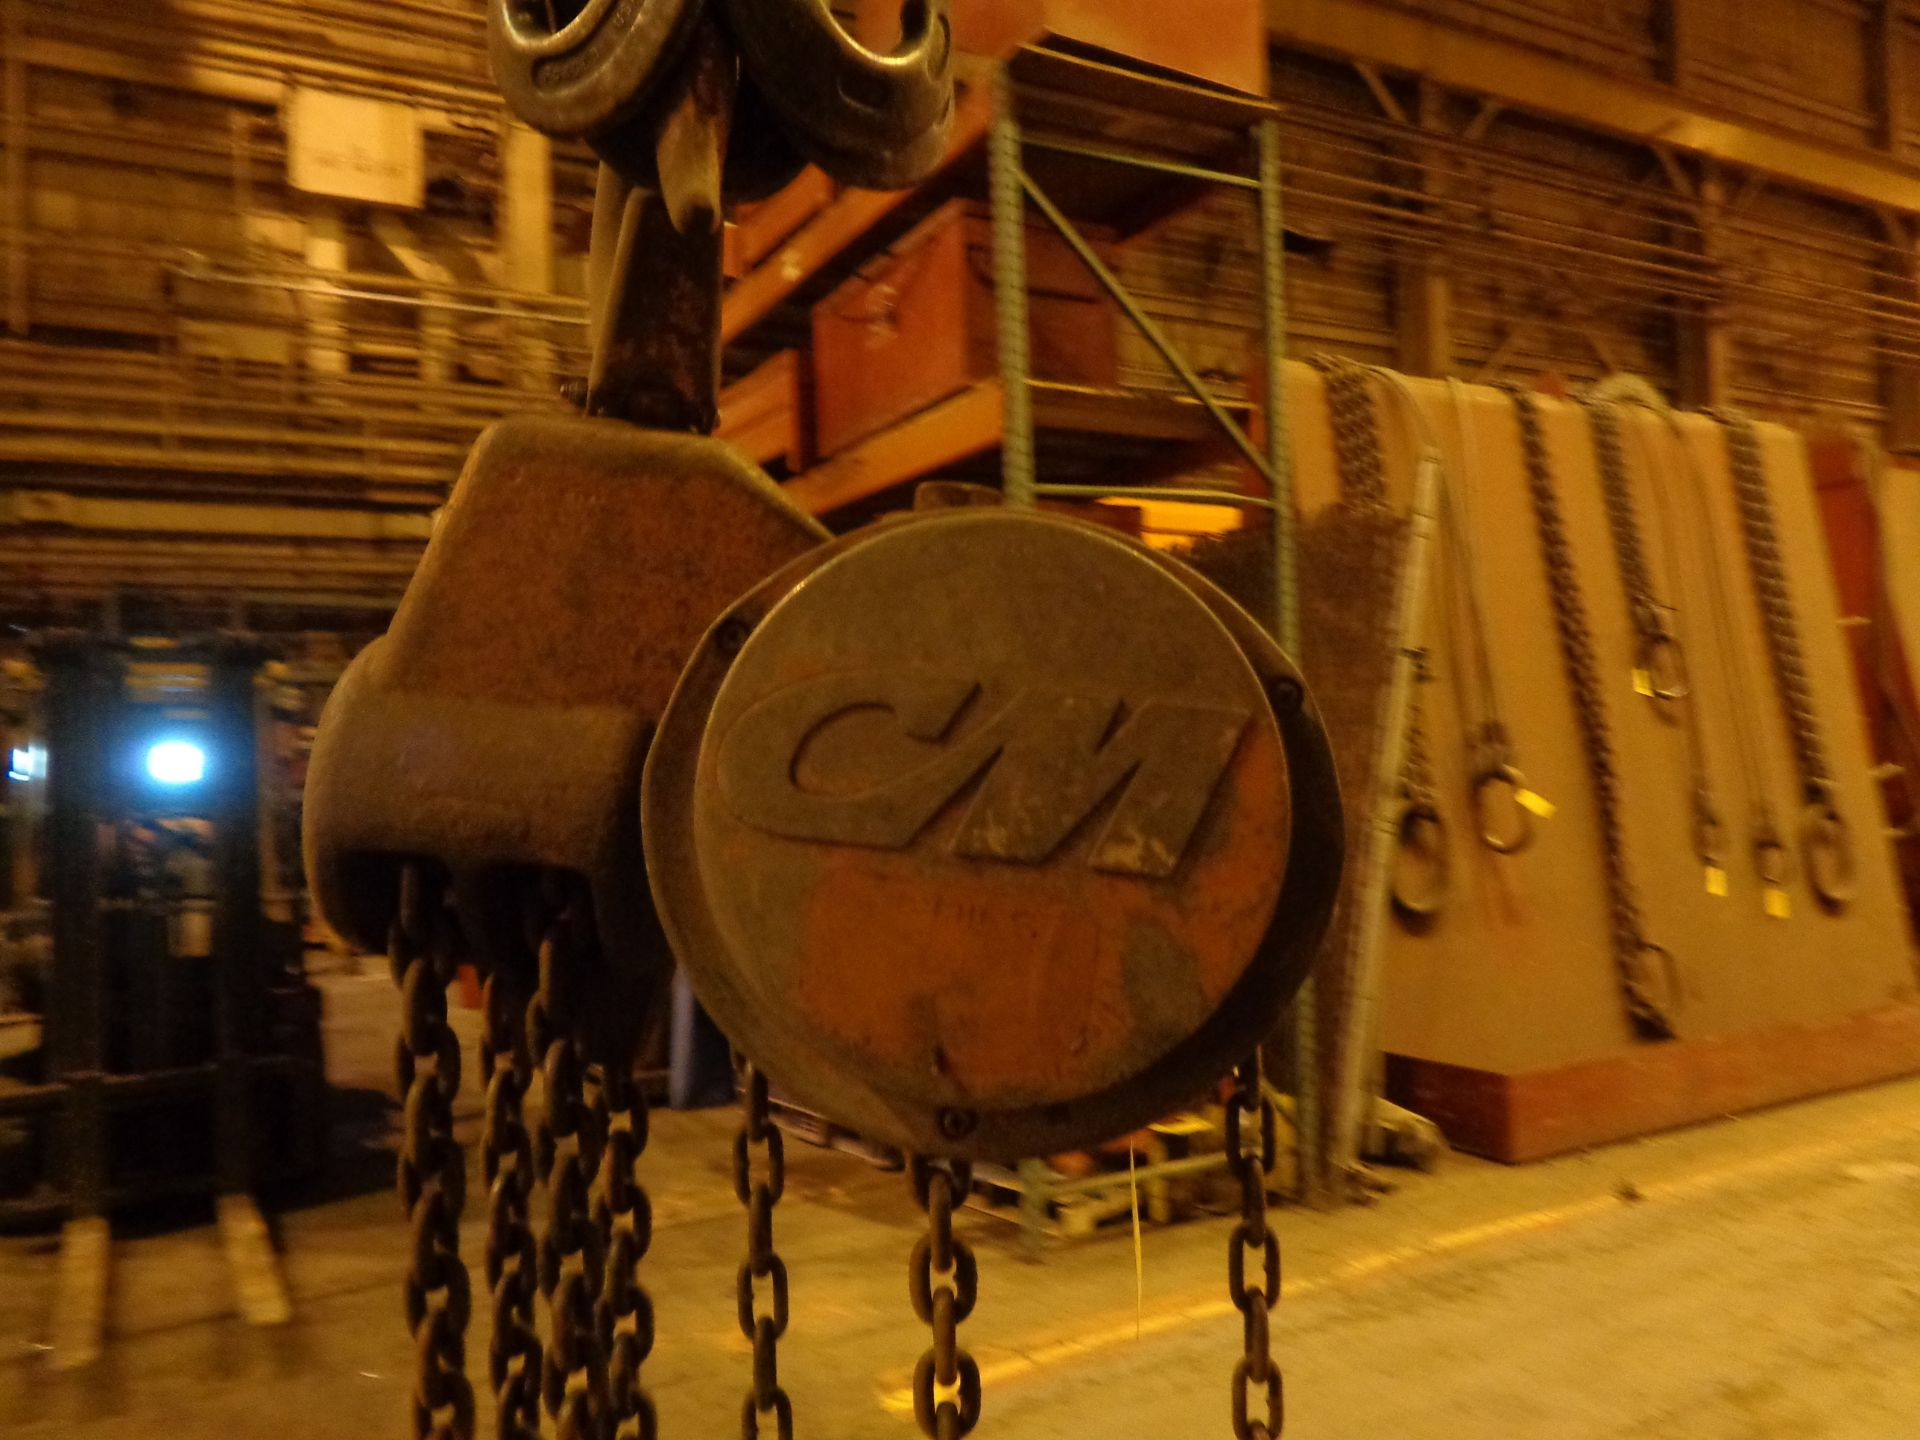 Lot 1 - 10 Ton CM Chain Hoist (#451)